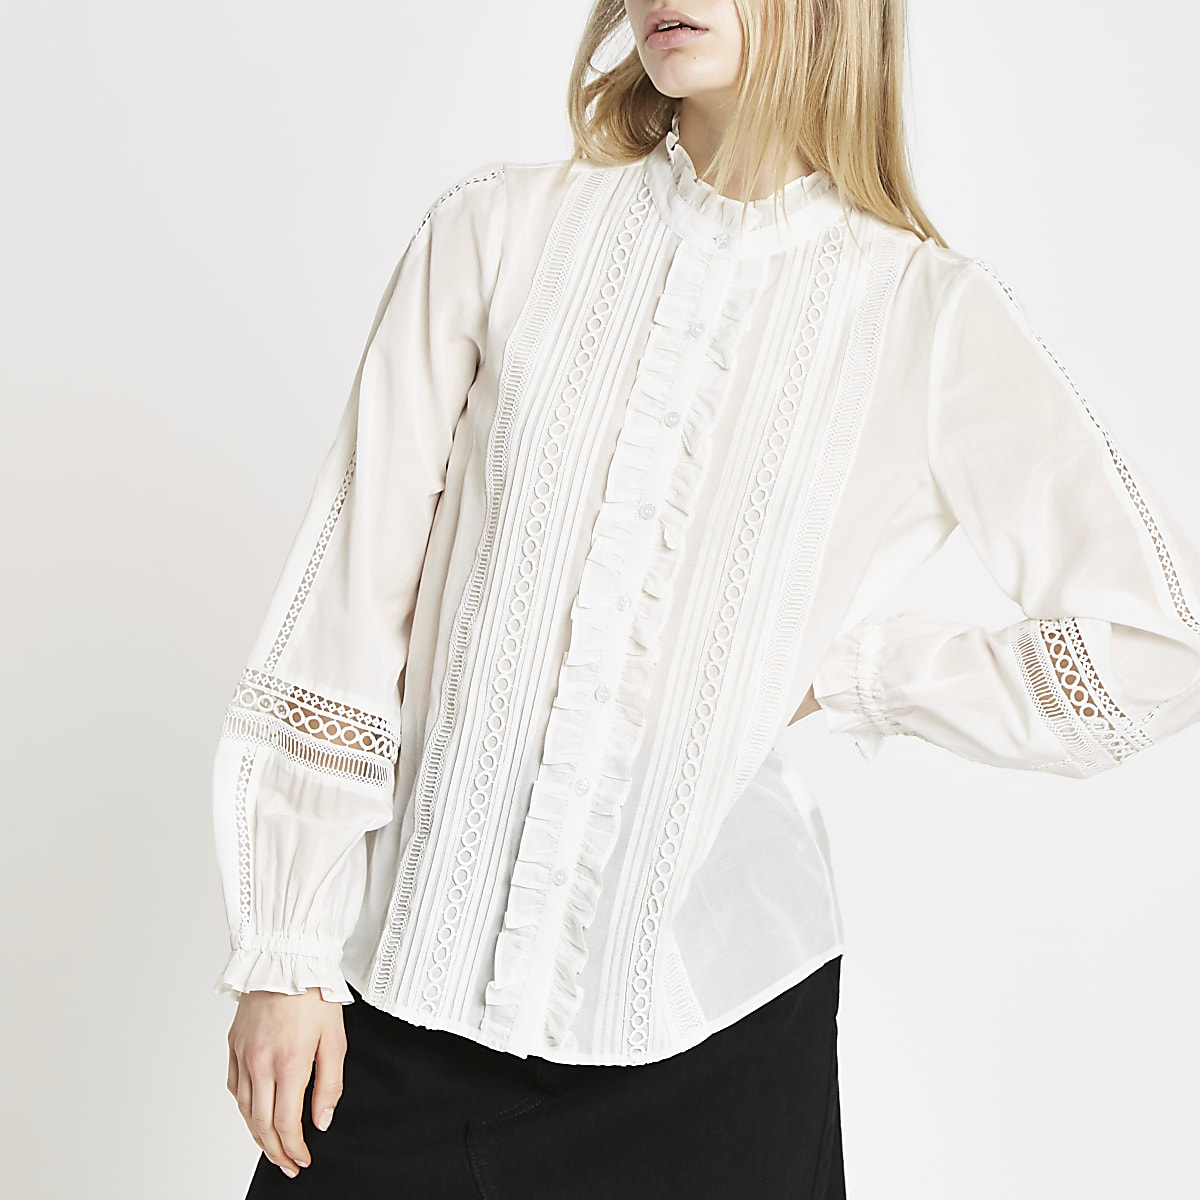 new release good out x amazon White long sleeve broderie blouse